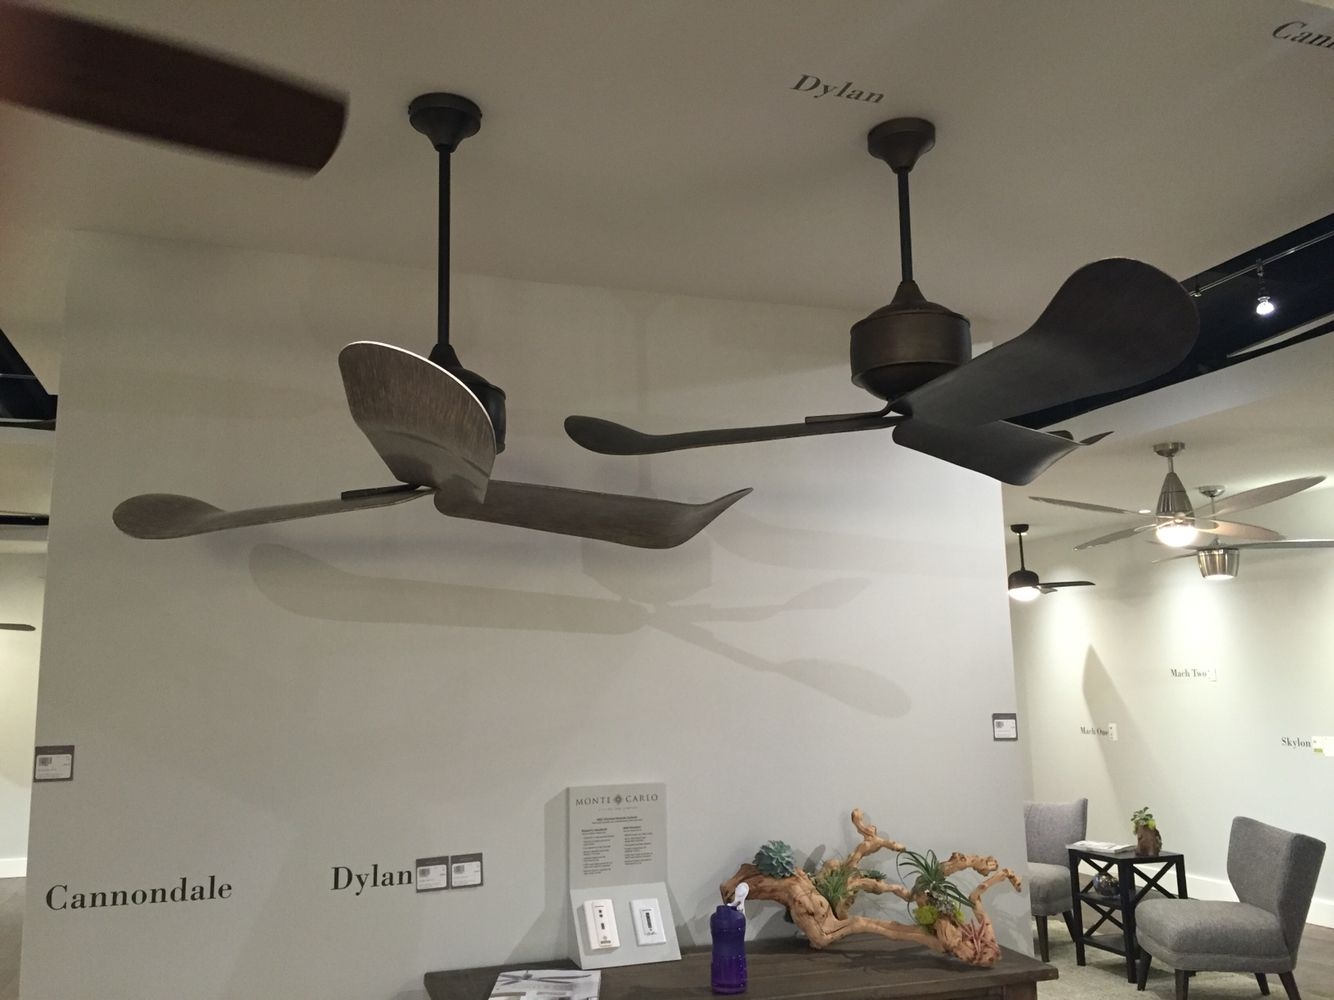 Dylan By Monte Carlo 56 Outdoor Rated 8300cfm Remote Included Aged Pewter Or Aged Brass Ceiling Lights Ceiling Fan Decor